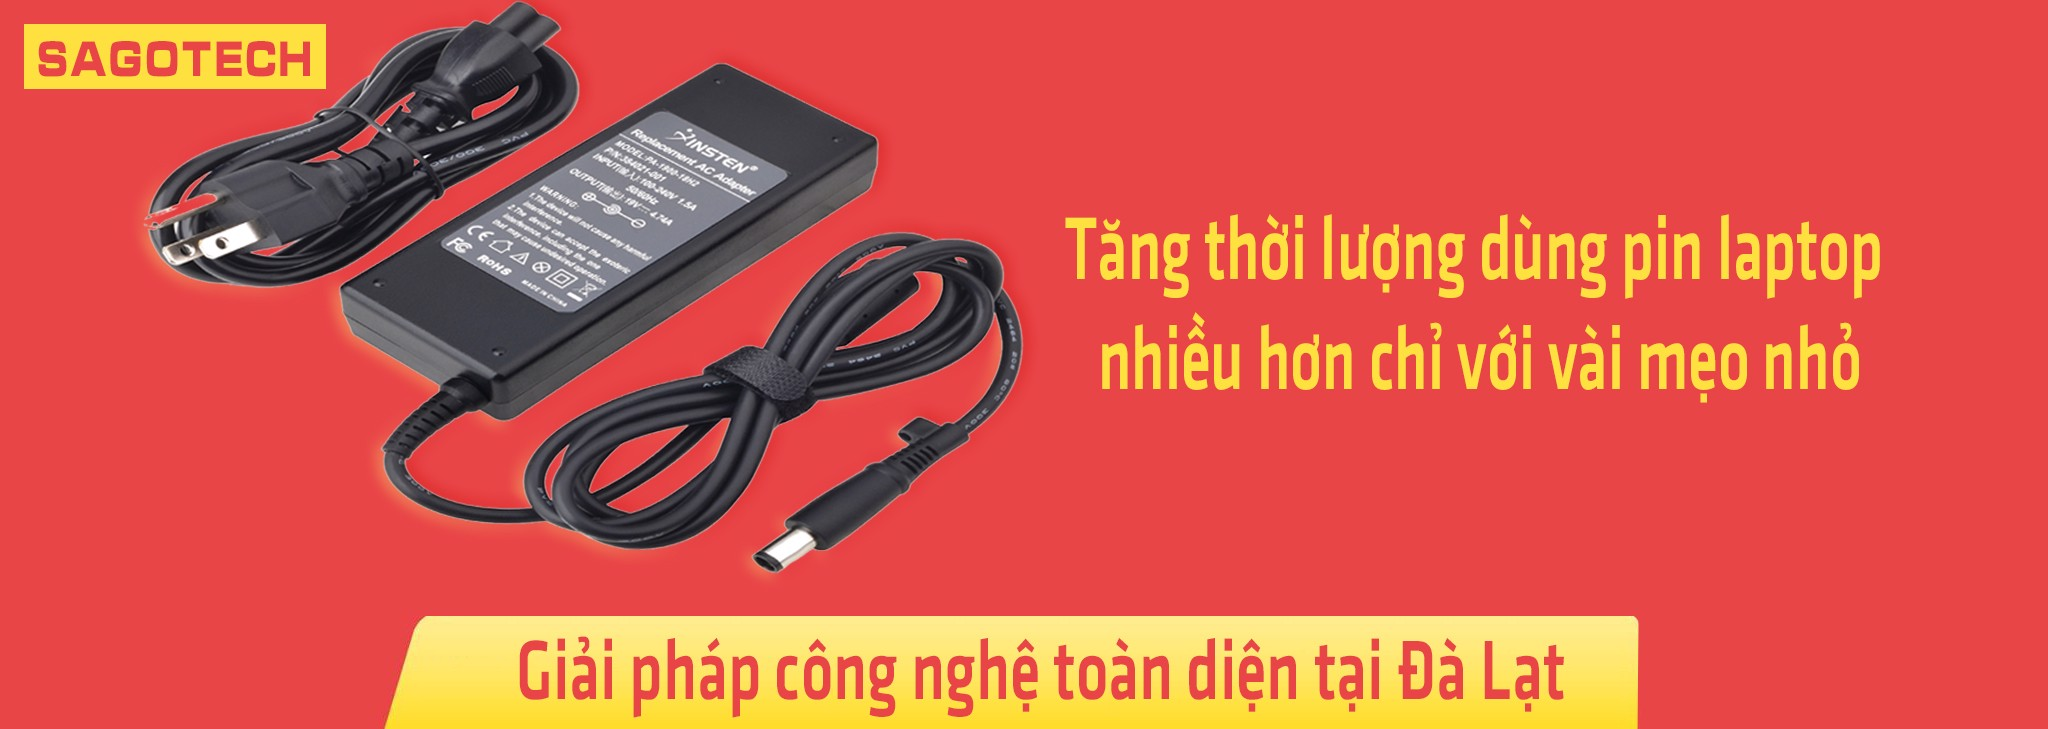 https://file.hstatic.net/1000266242/collection/tang-thoi-luong-dung-pin-nhieu-hon-voi-vai-meo-nho_5d96101d573f4cf68dd85fe176f0930d.jpg